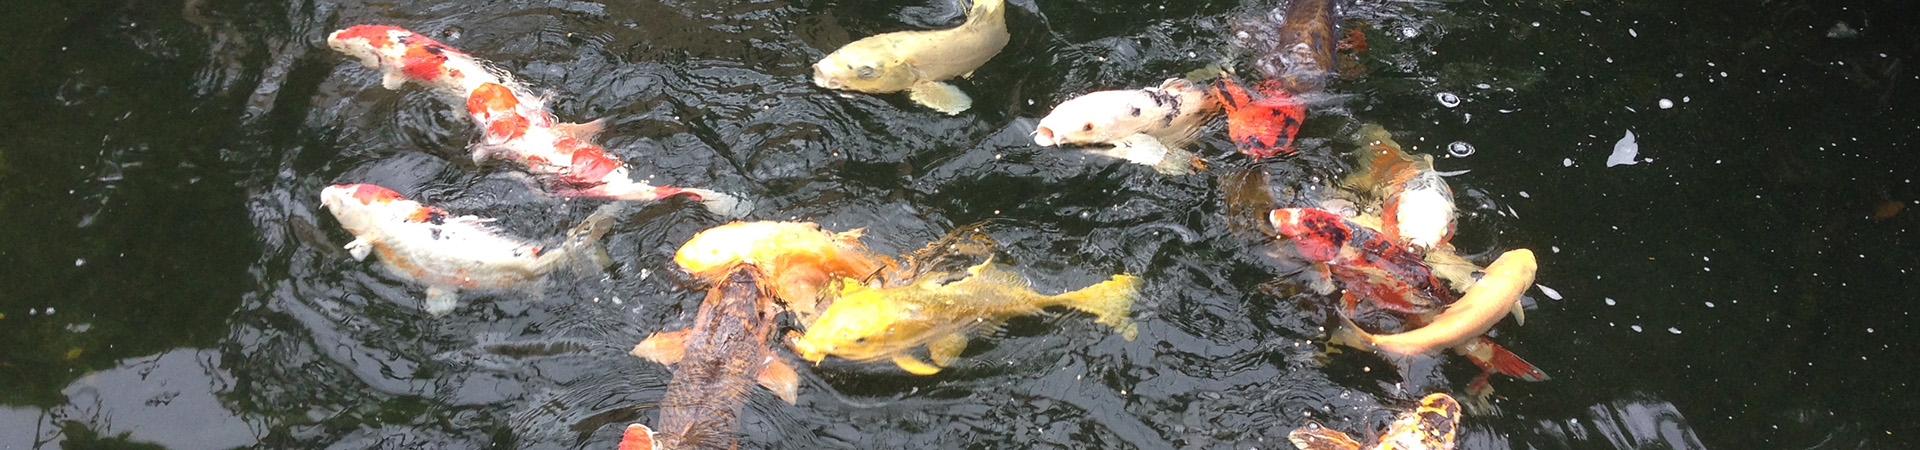 Pond services maintenance cleaning repairs for Koi pond size requirements